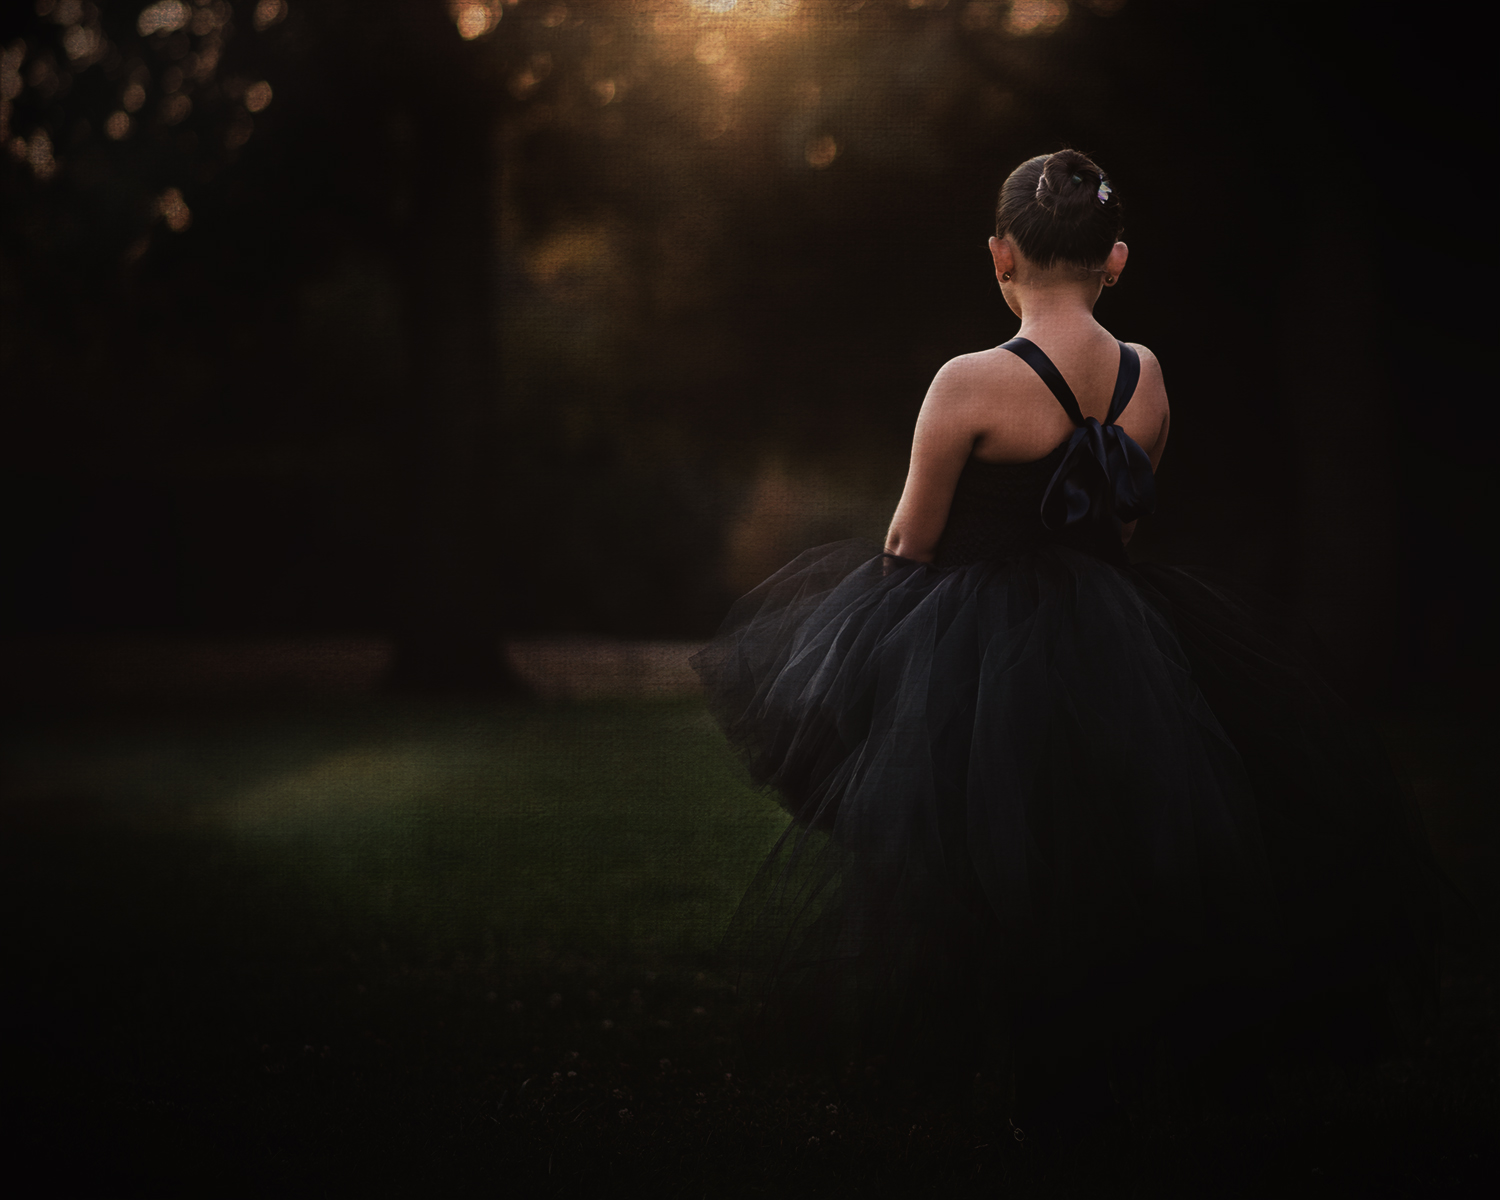 Child model wearing a black tutu dress from Little Ladybug Tutus seen from behind